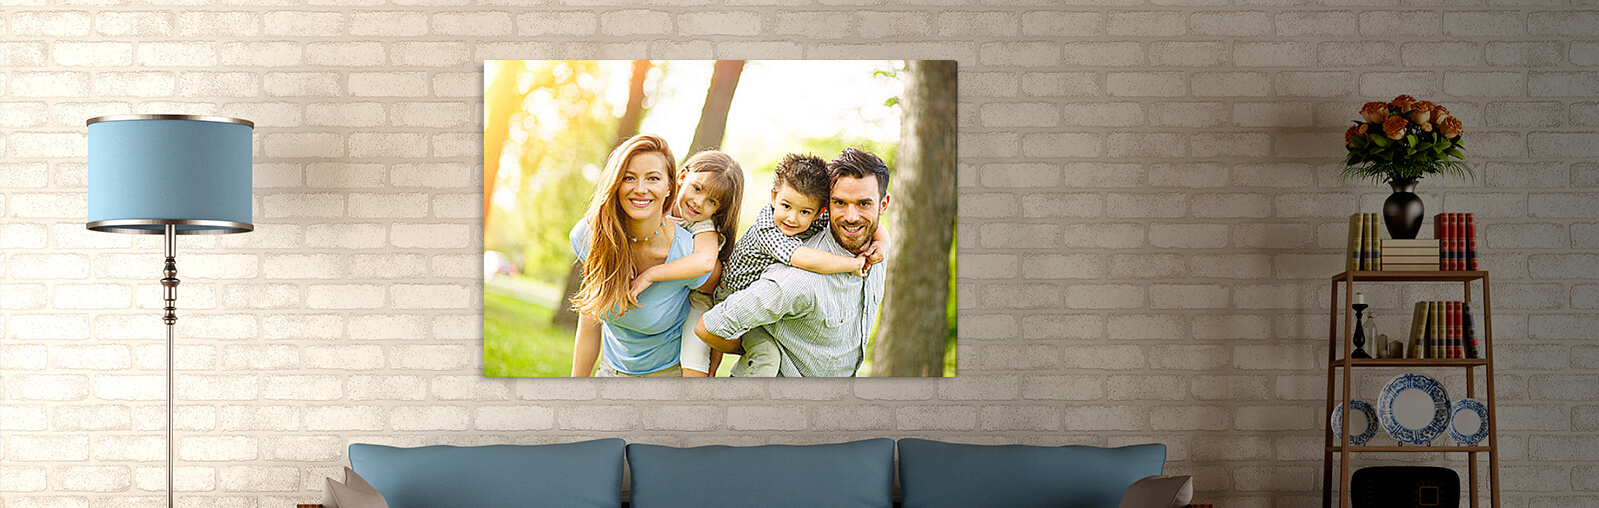 Custom Canvas Wall Art print your photos on canvas, instagram photos on your wall, canvas